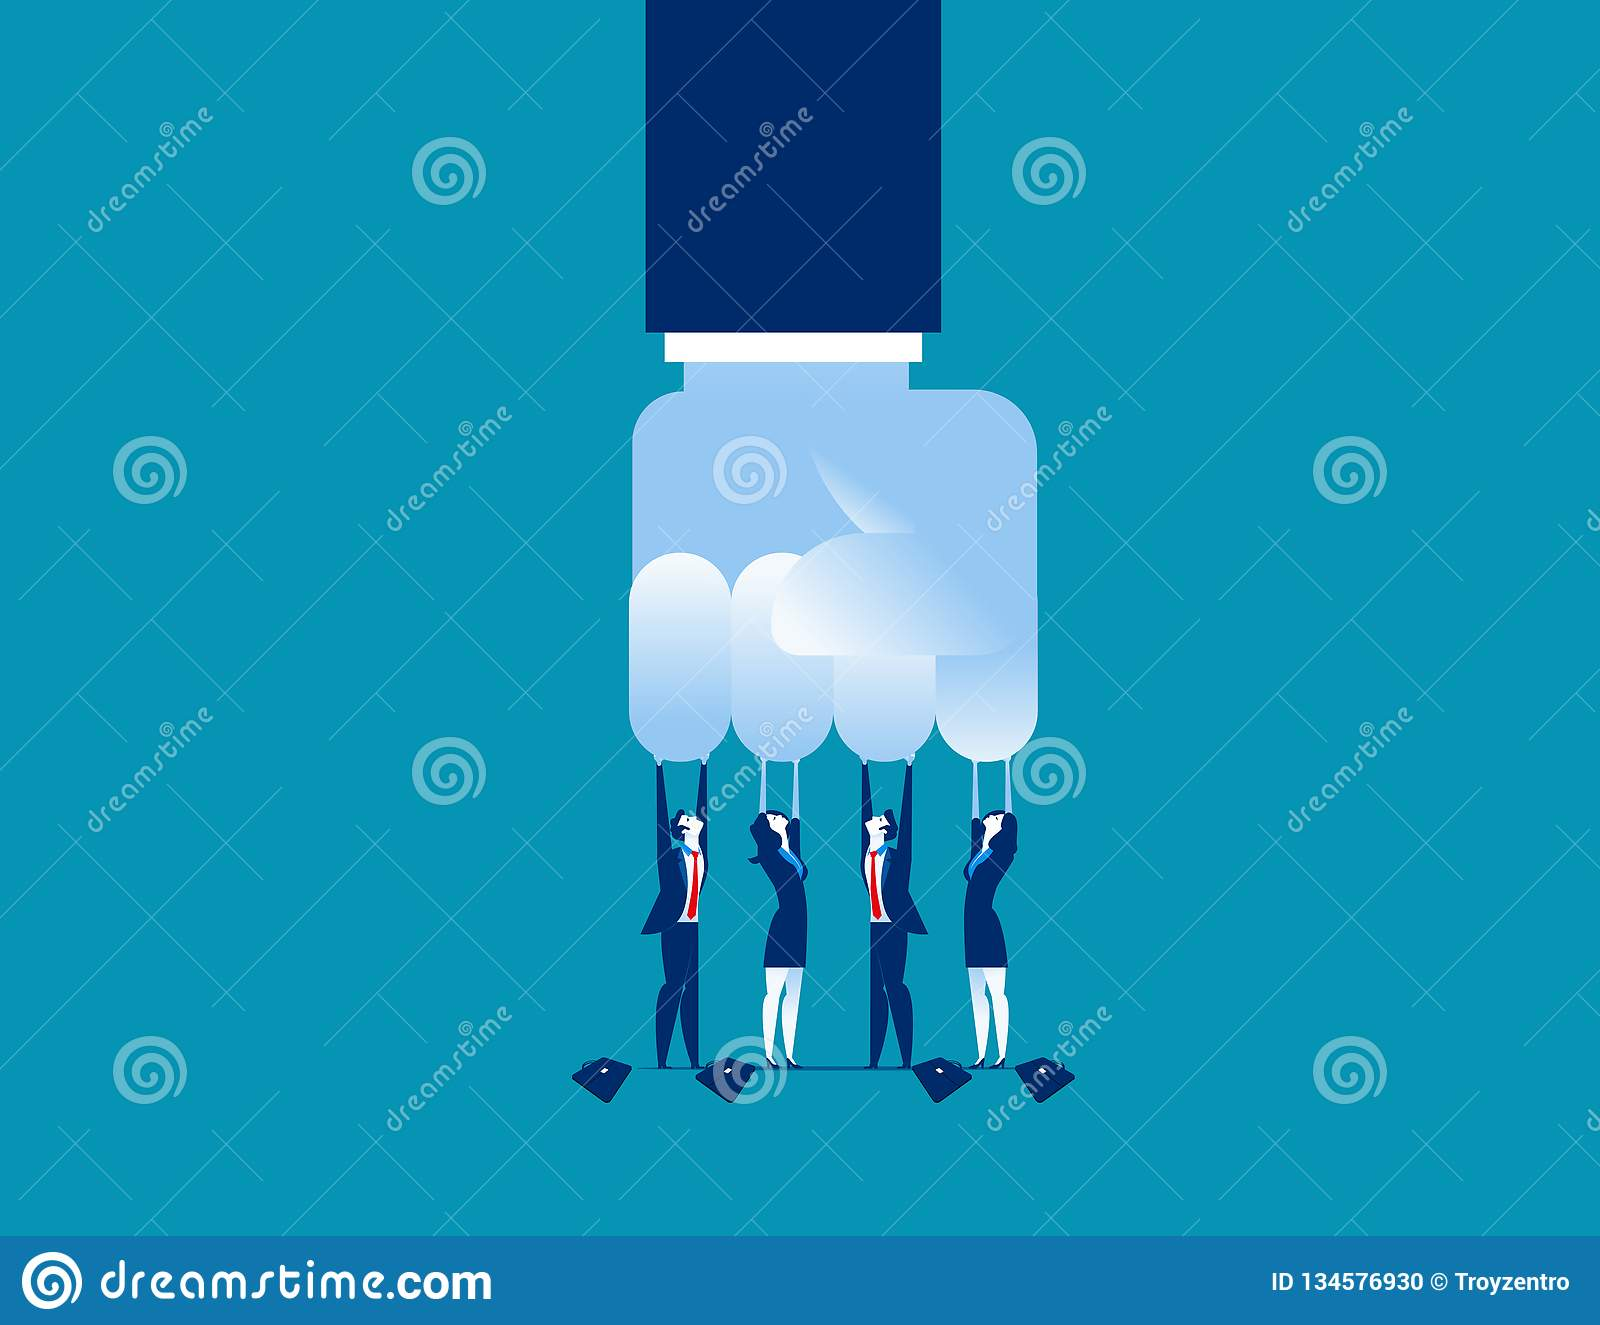 Challenge. Small challenge big business. Concept business vector illustration